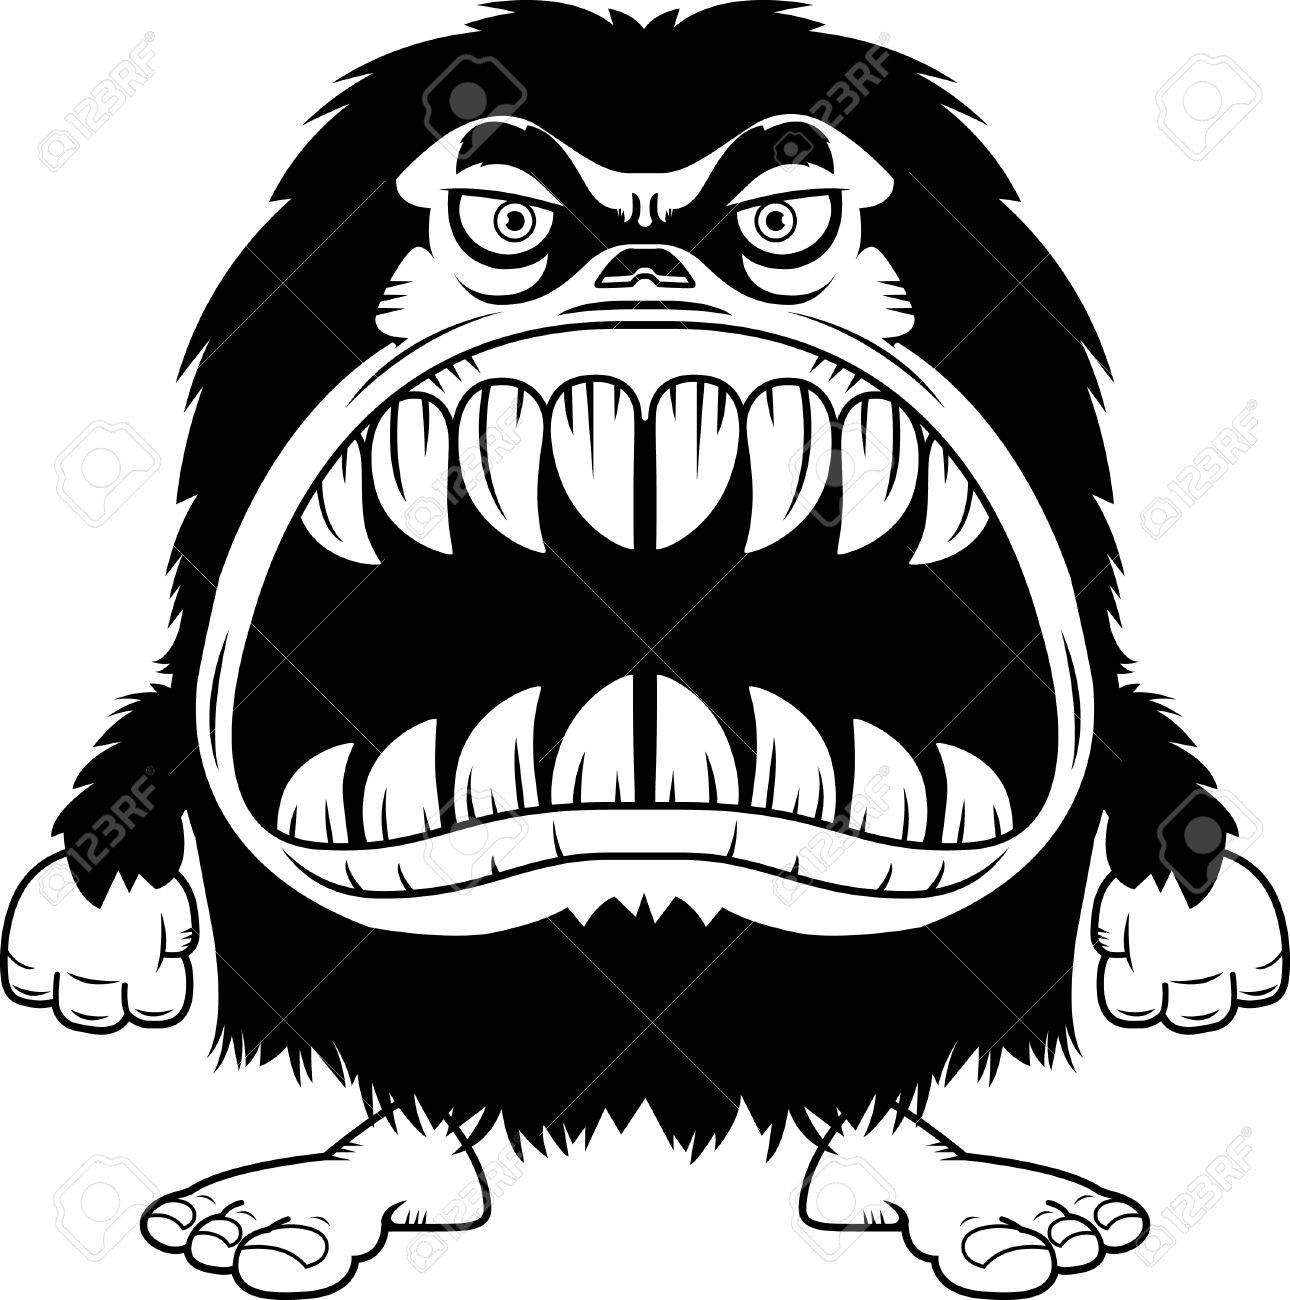 1290x1300 A Cartoon Illustration A Hairy Monster With A Big Mouth Full